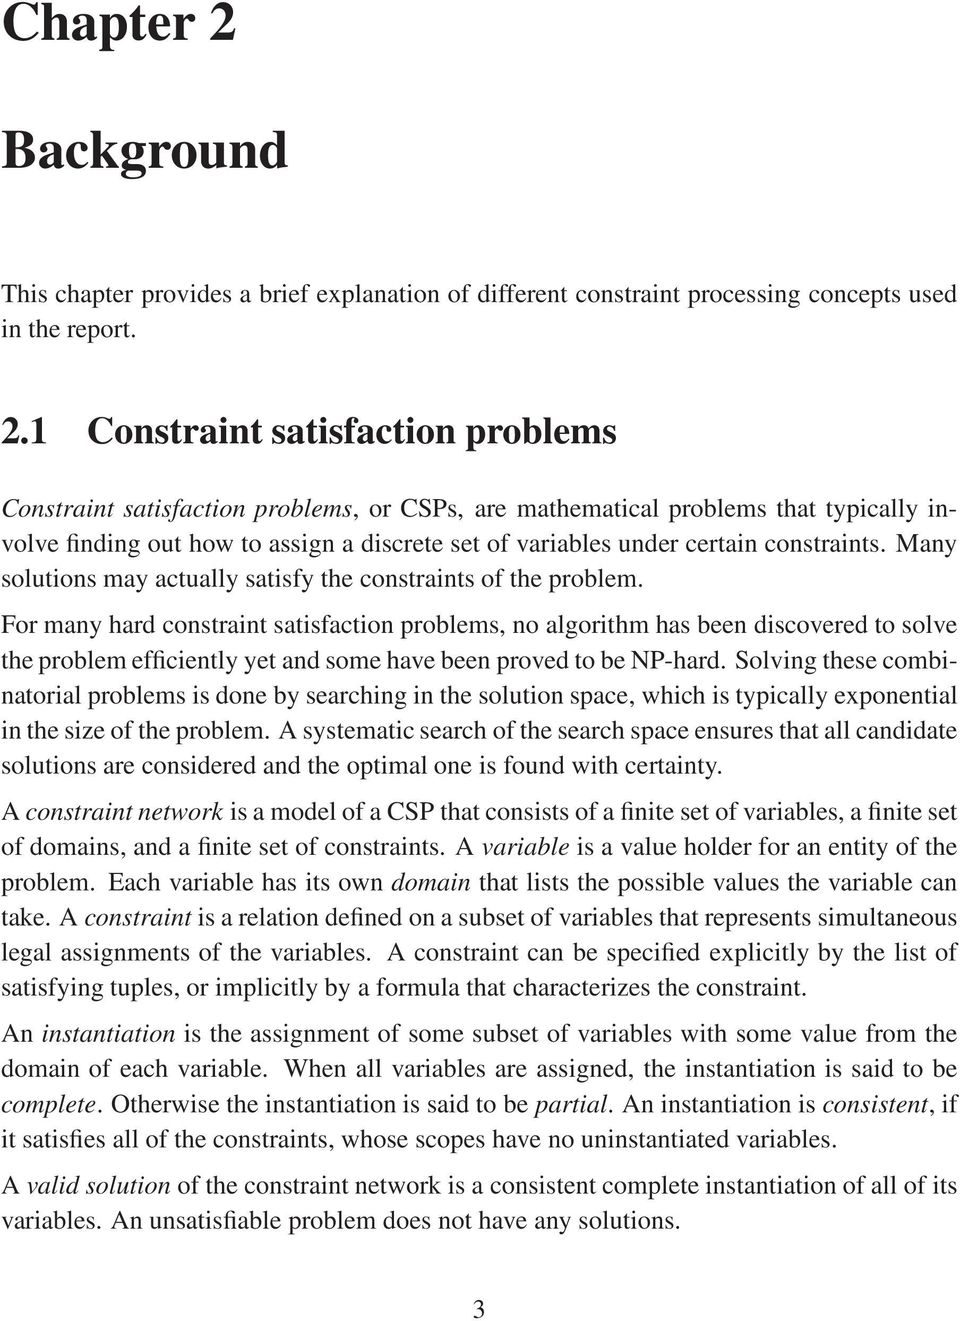 1 Constraint satisfaction problems Constraint satisfaction problems, or CSPs, are mathematical problems that typically involve finding out how to assign a discrete set of variables under certain